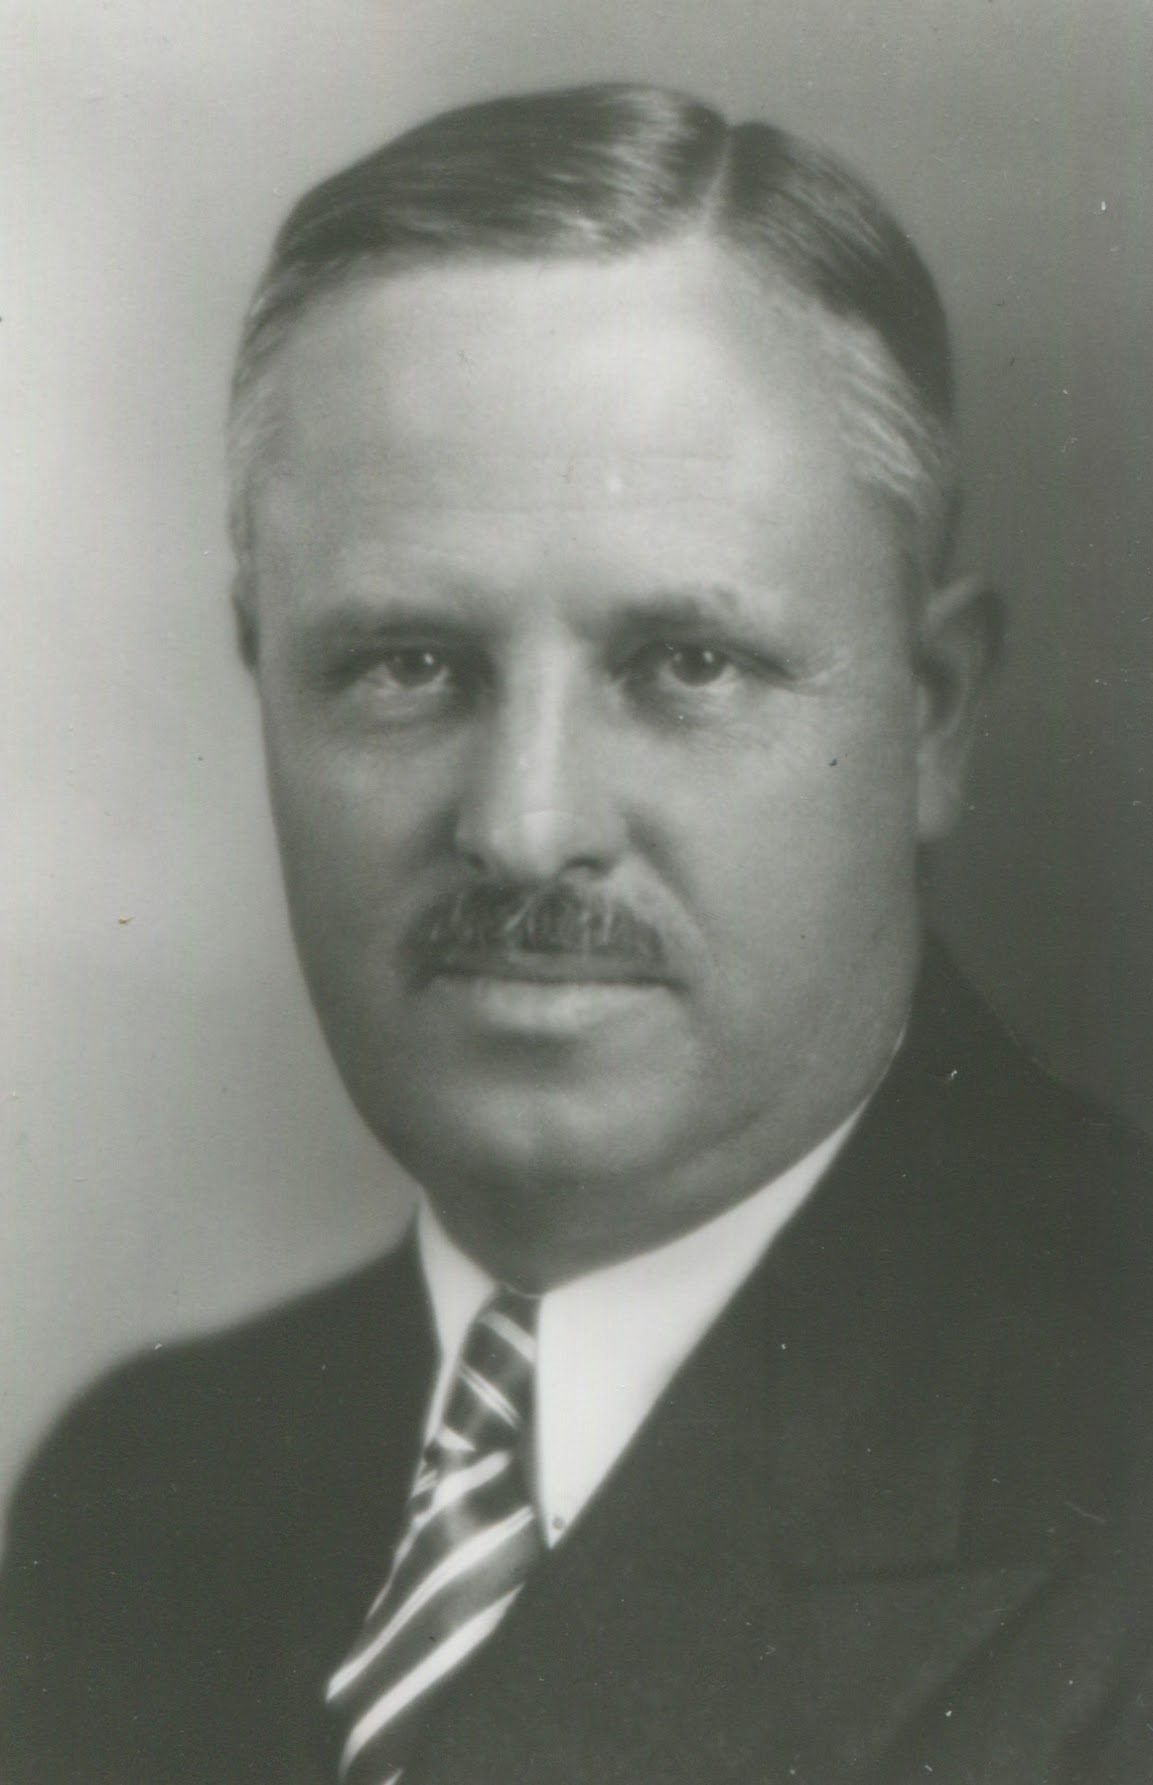 Walter S. Campbell